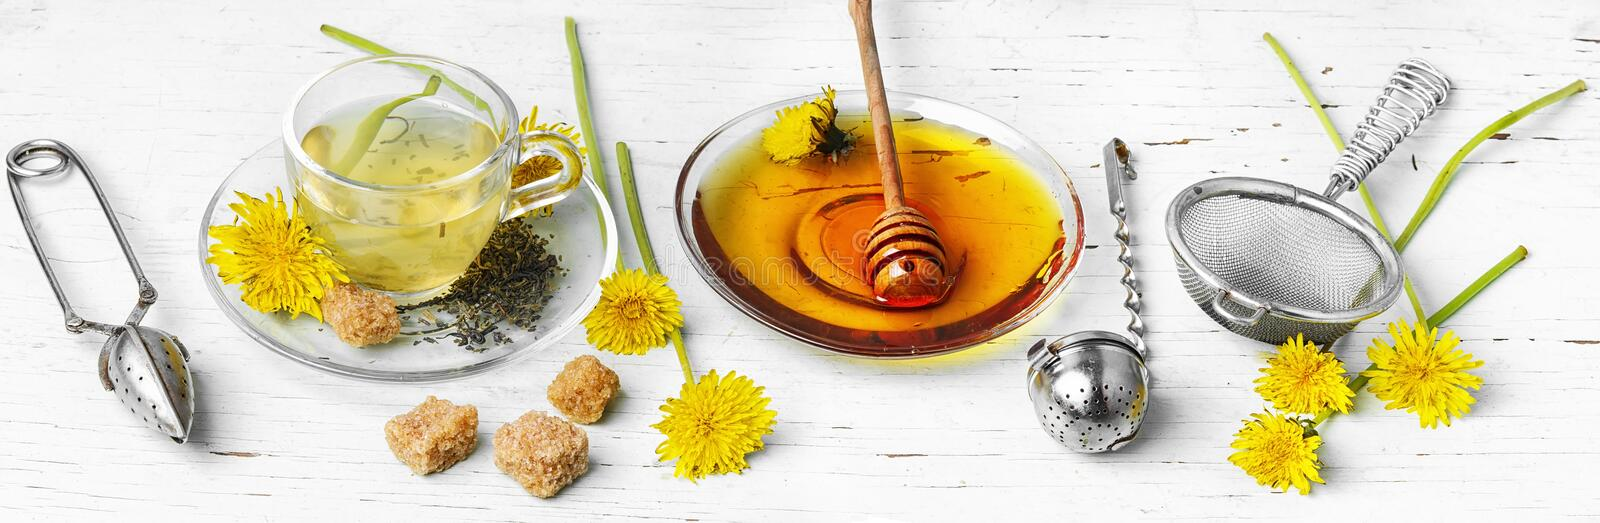 Tea with honey dandelion royalty free stock images